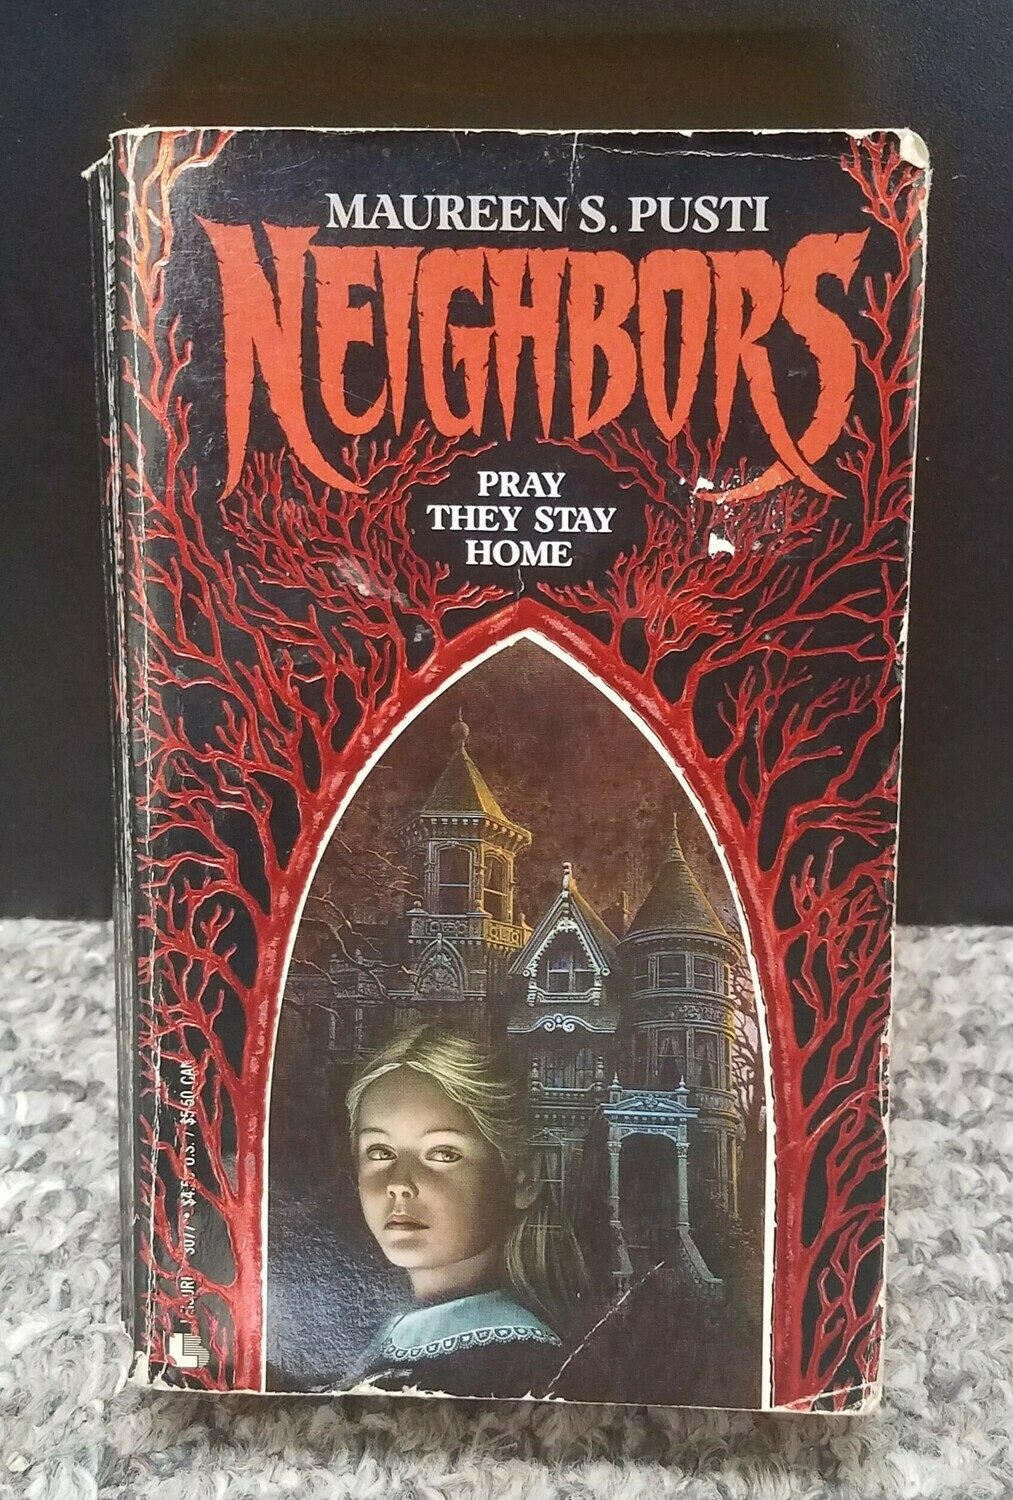 Neighbors by Maureen S. Pusti